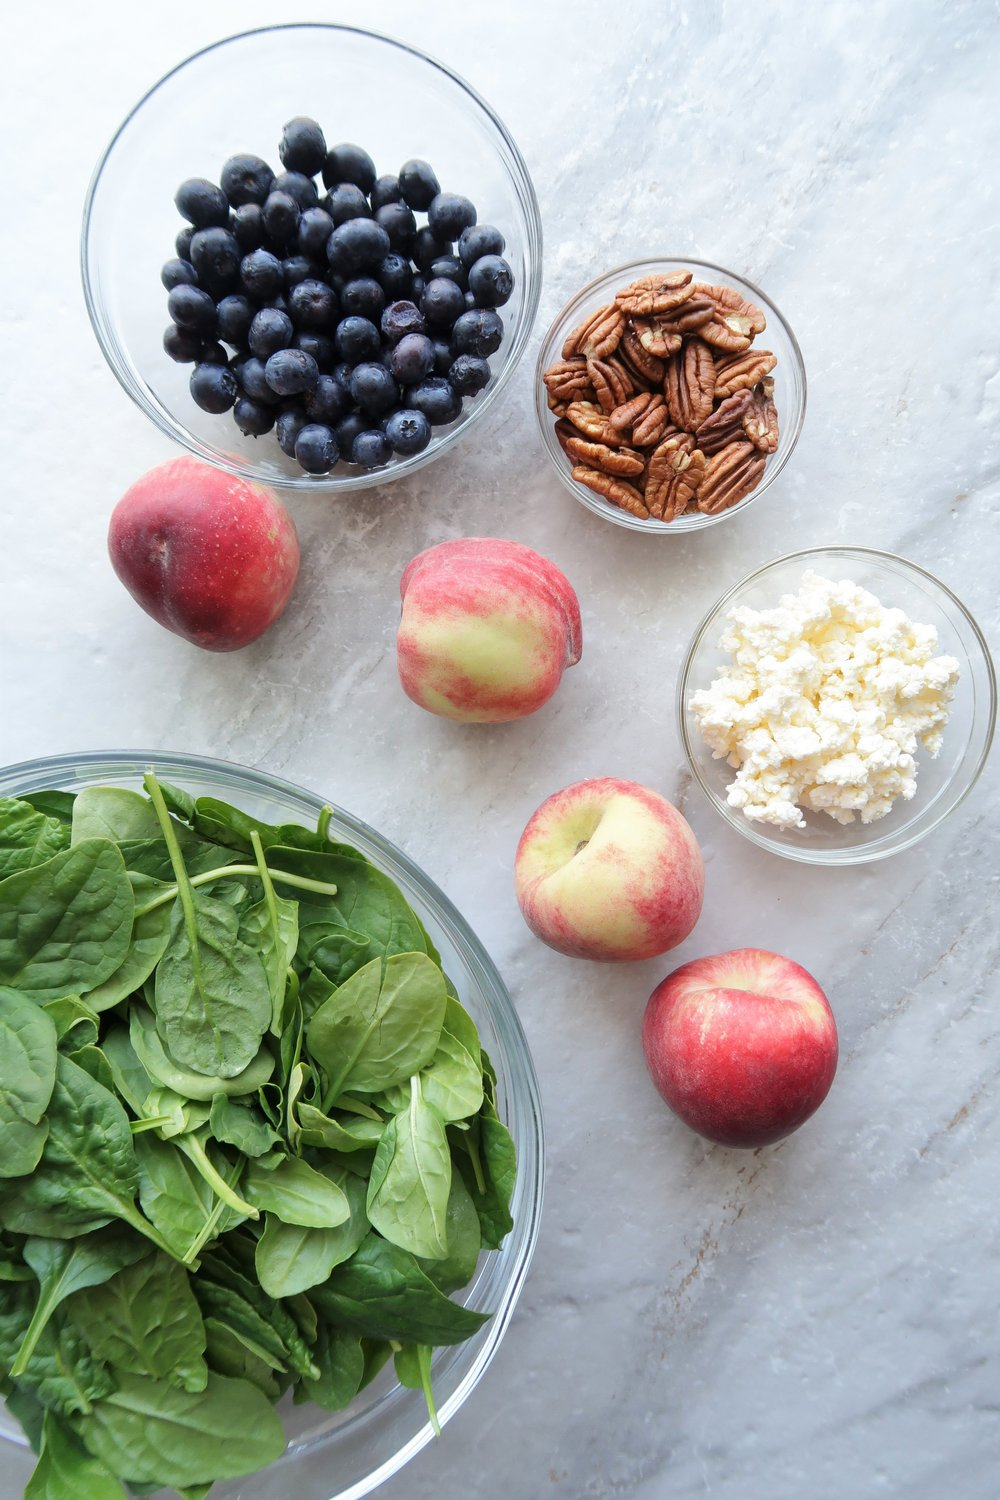 Glass bowls containing fresh blueberries, pecans, feta cheese, and spinach with four white peaches surrounding the bowls.